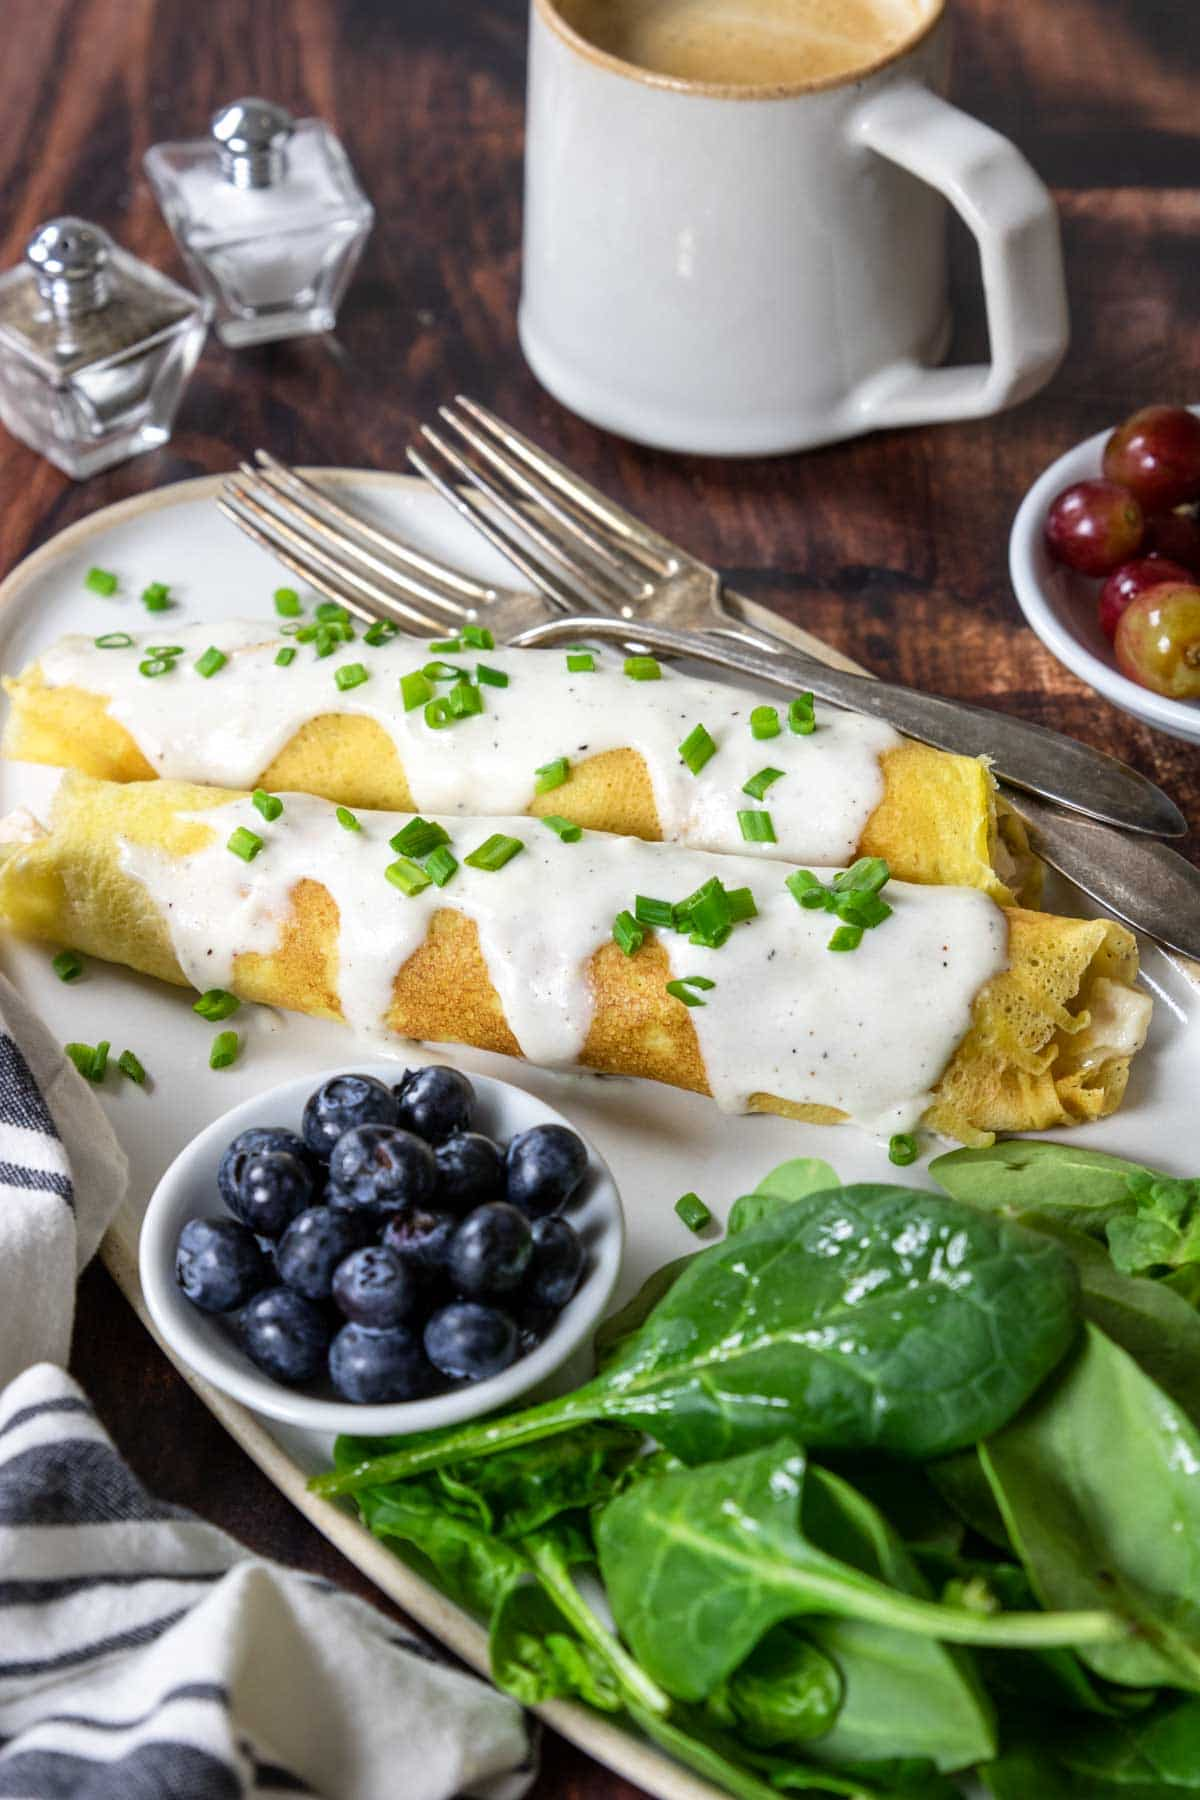 a plate with two chicken crepes topped with béchamel sauce and salad and berries